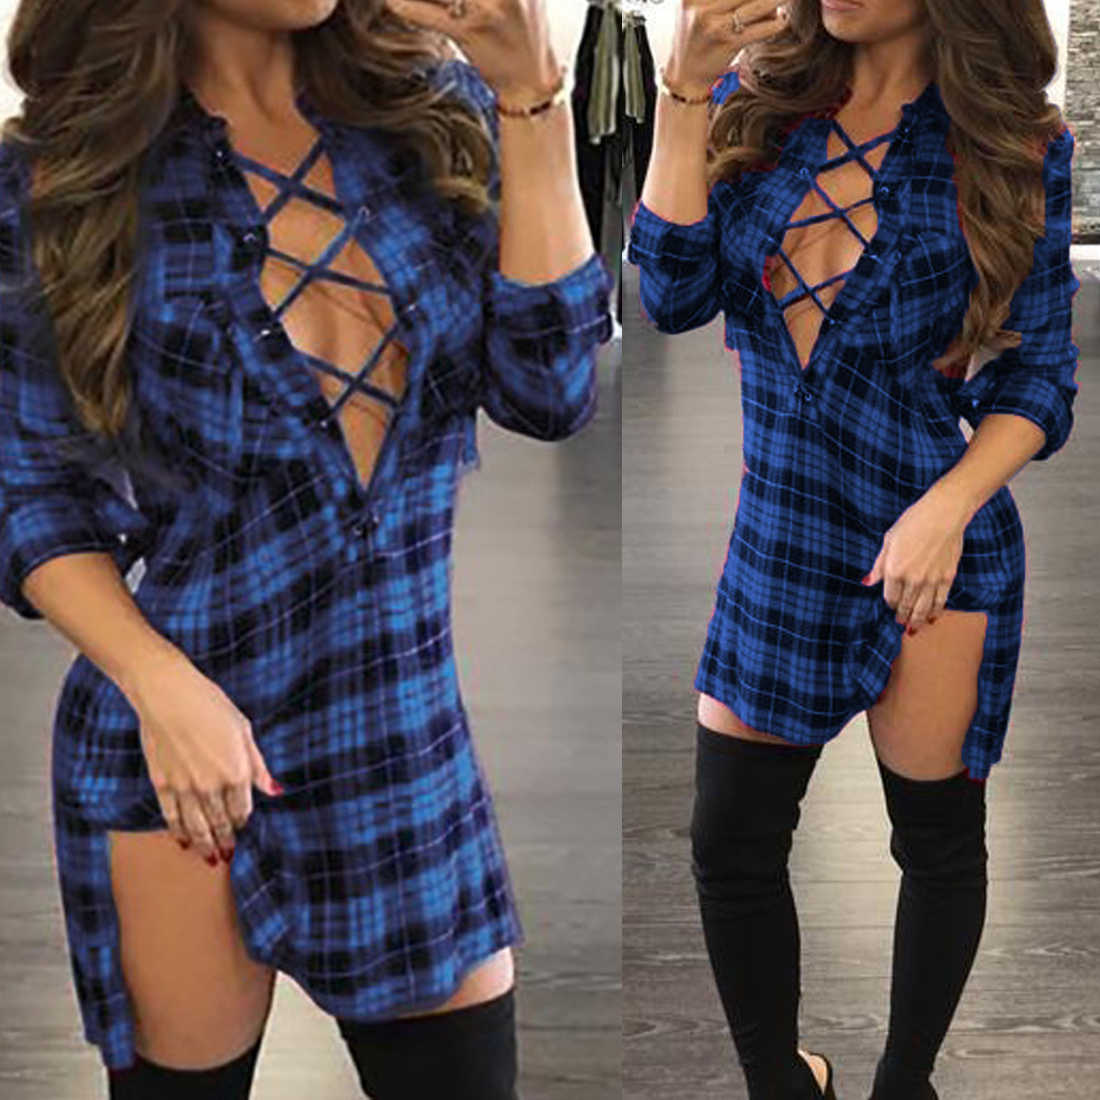 Jimmyhank Vrouwen Mode Herfst Winter Jurk Mini Party Dress Sexy Diepe V-hals Bandage Plaid Bodycon Jurk